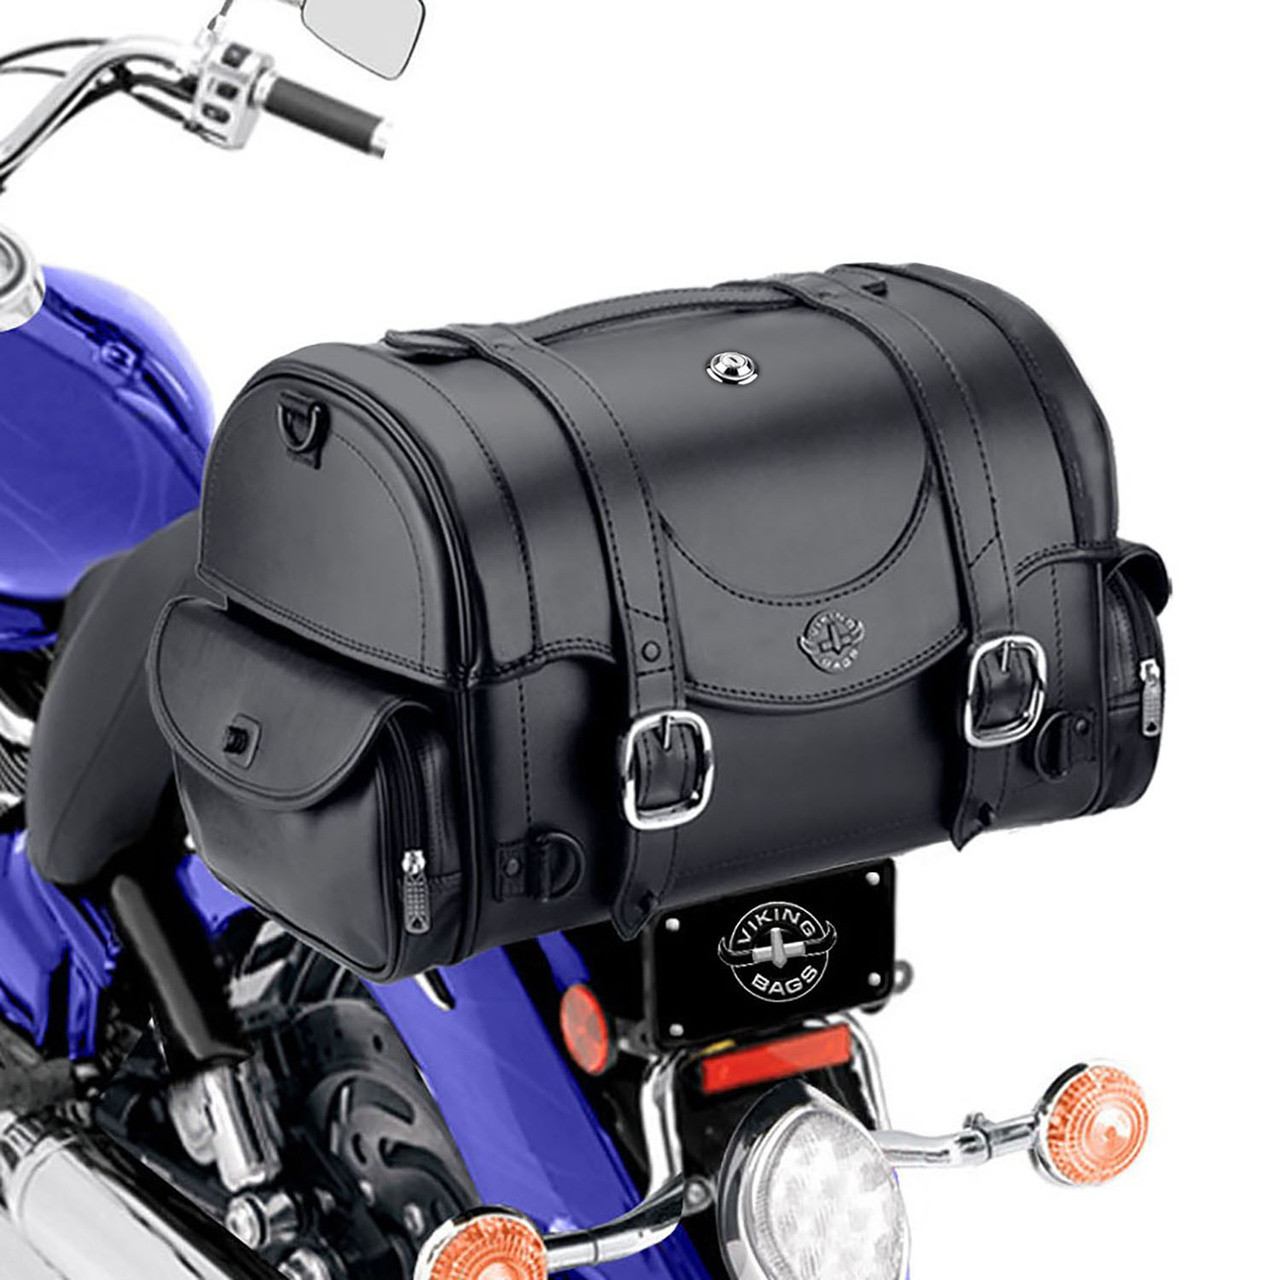 Viking Century 2050 CI Motorcycle Trunk  Side on Bike View